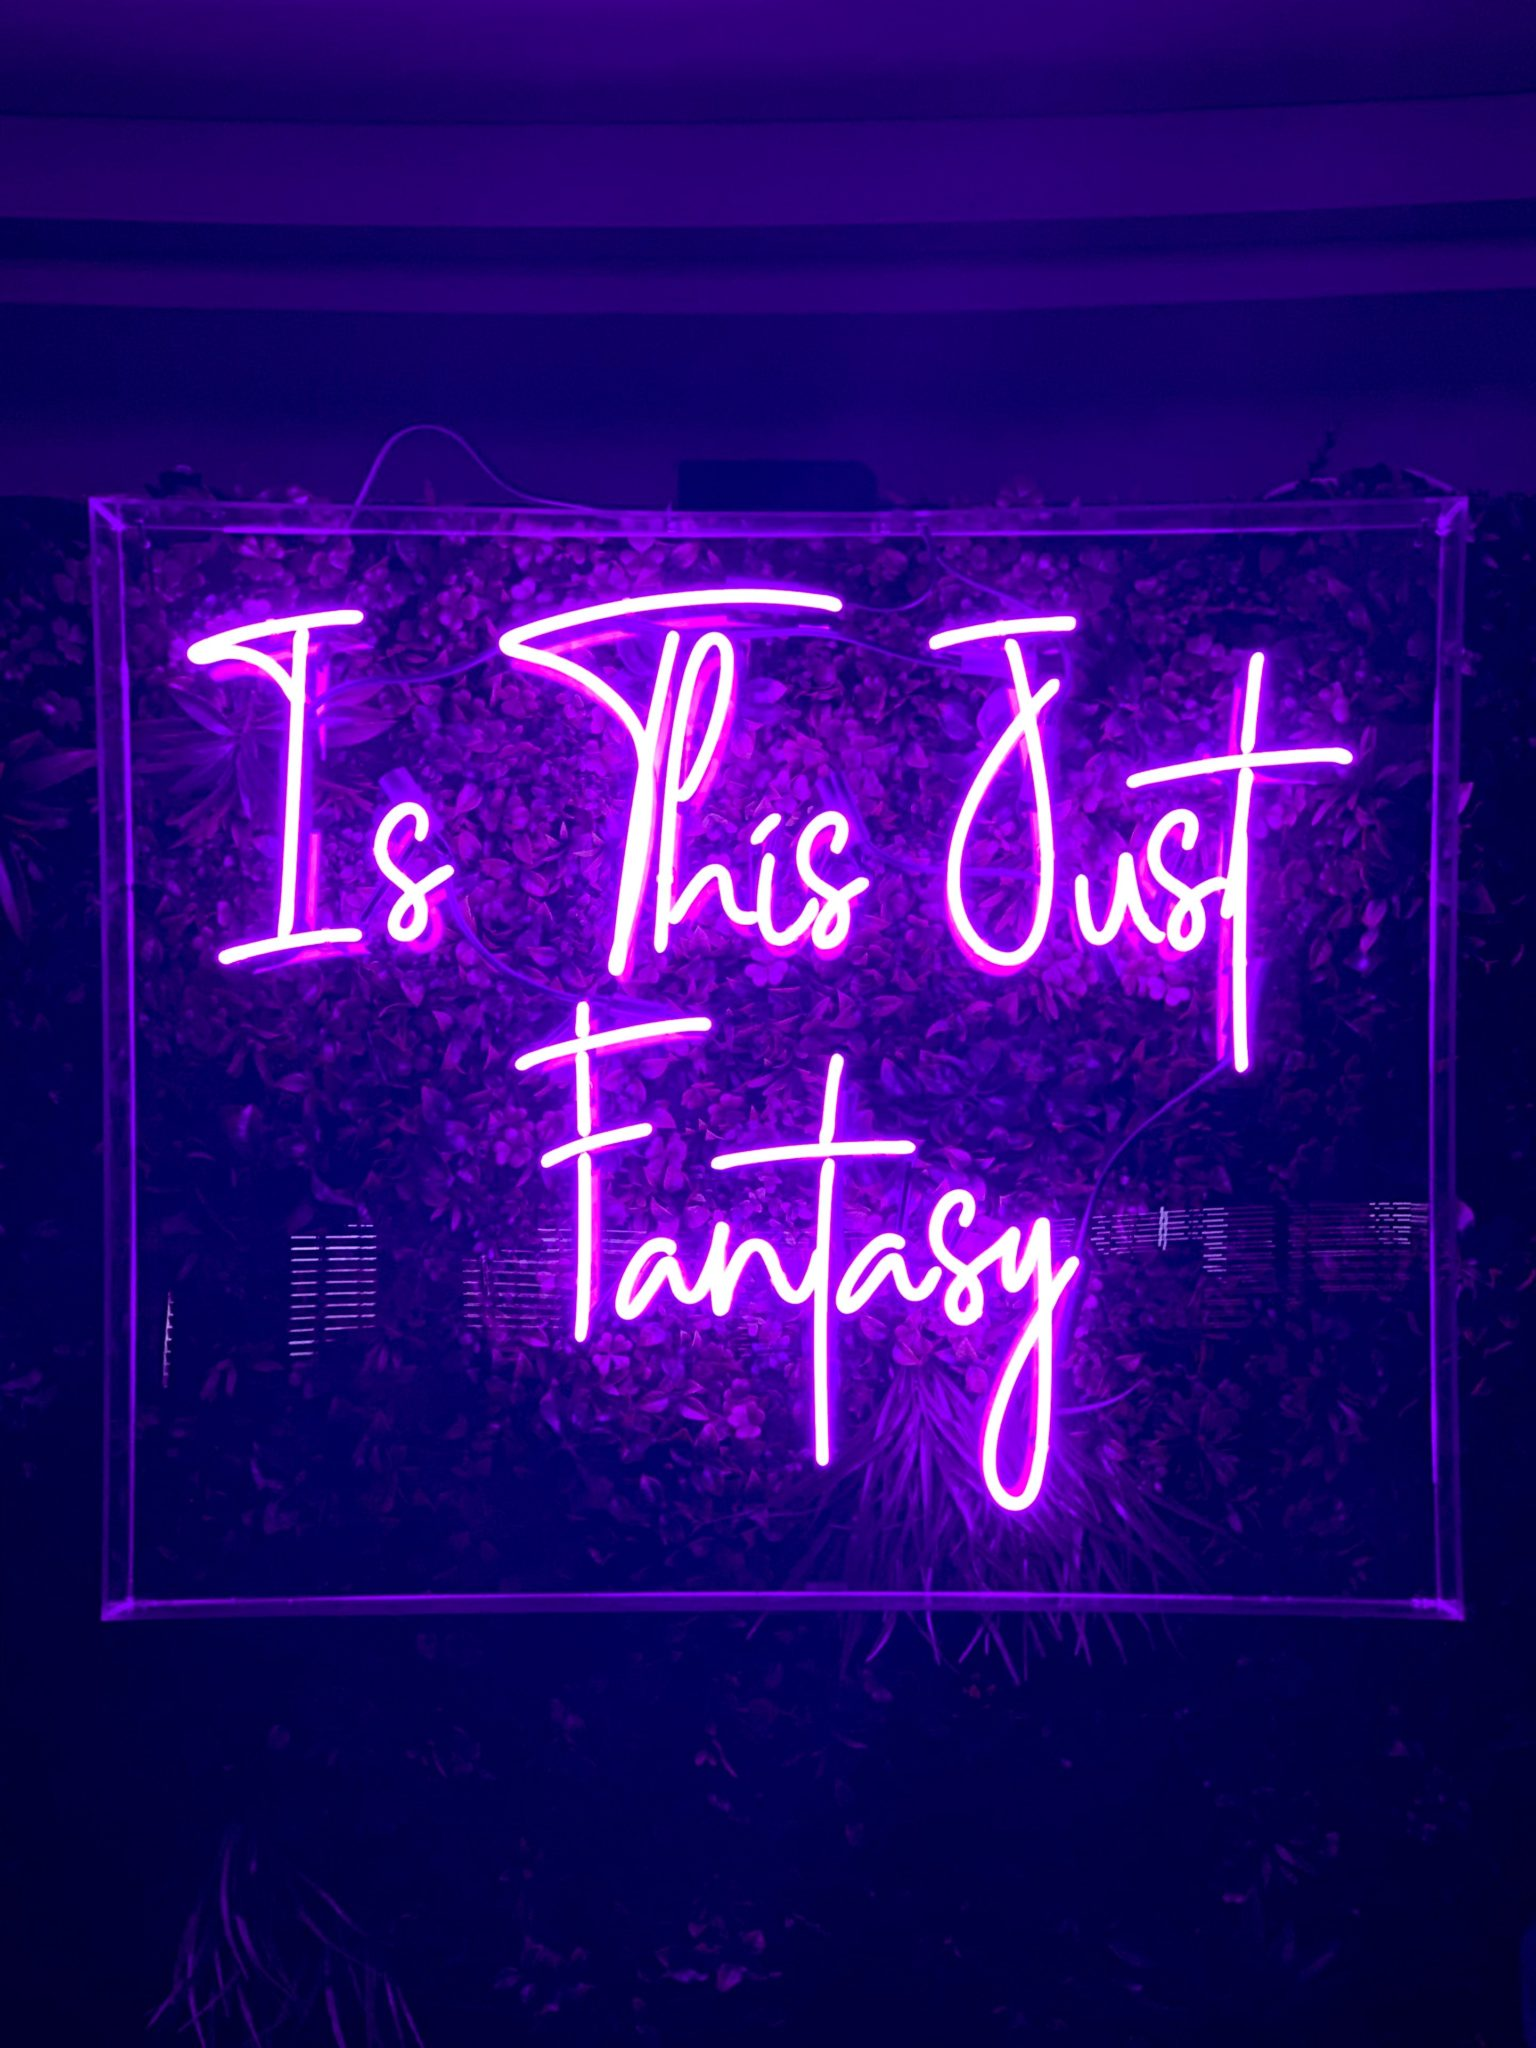 Purple Aesthetic Neon Signs Bridal Shower 101 Baddie neon orange aesthetic wallpaper. purple aesthetic neon signs bridal